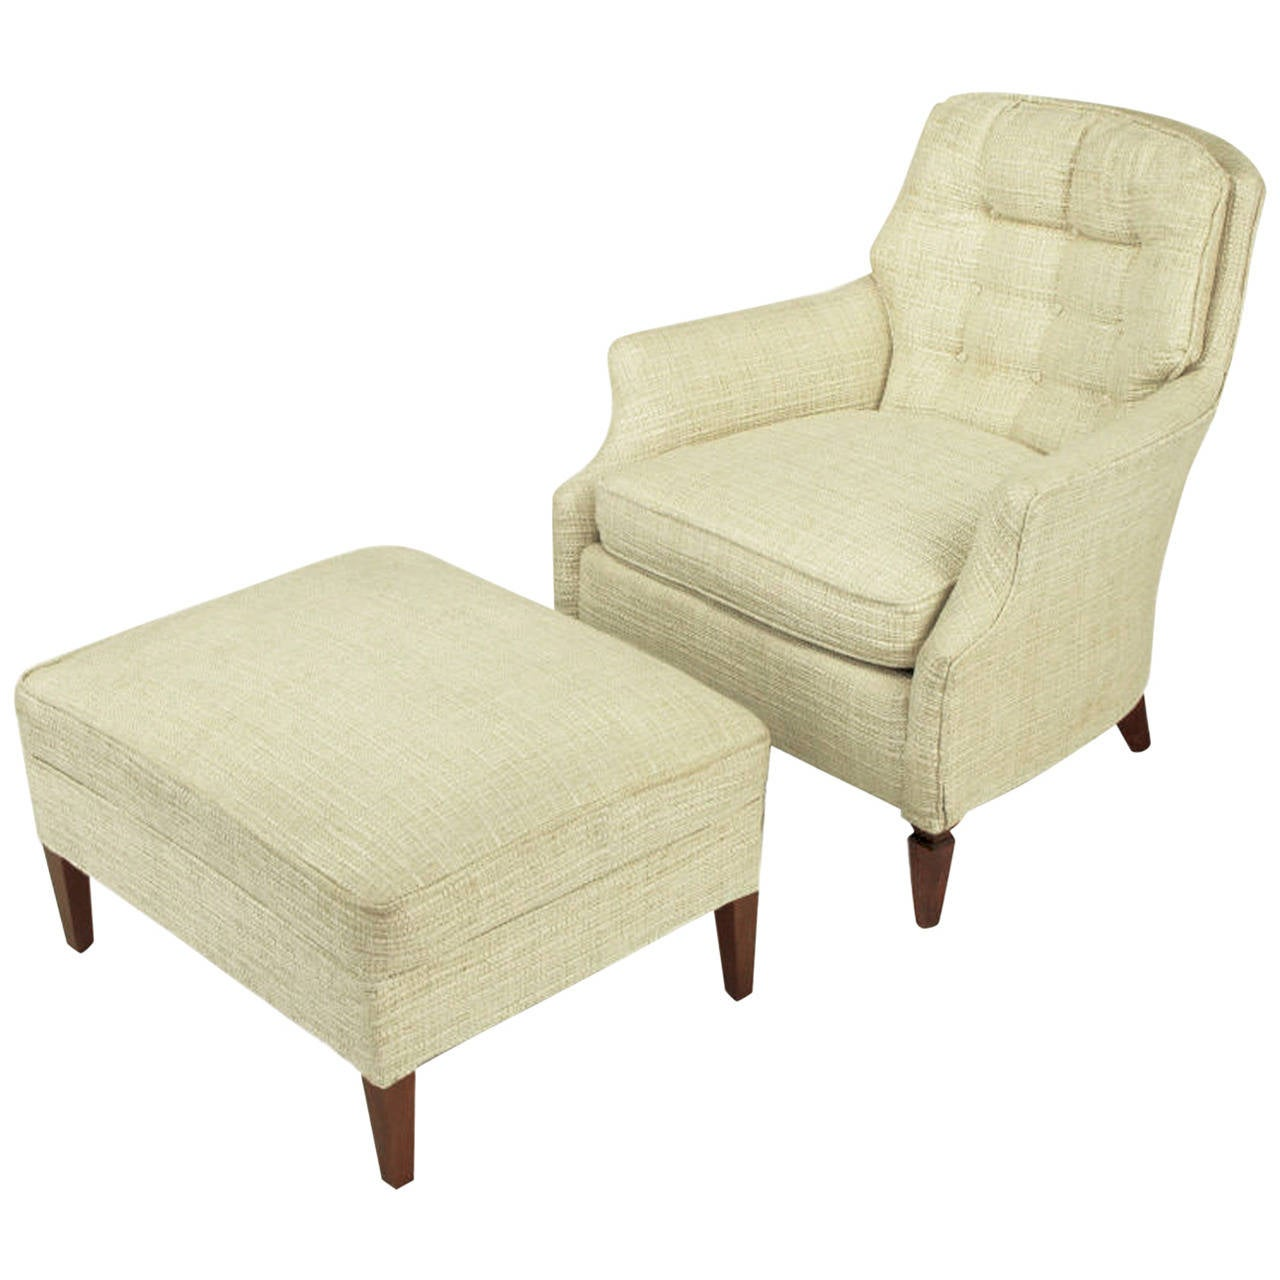 Chair And Ottoman Button Tufted Creamy Linen Lounge Chair And Ottoman For